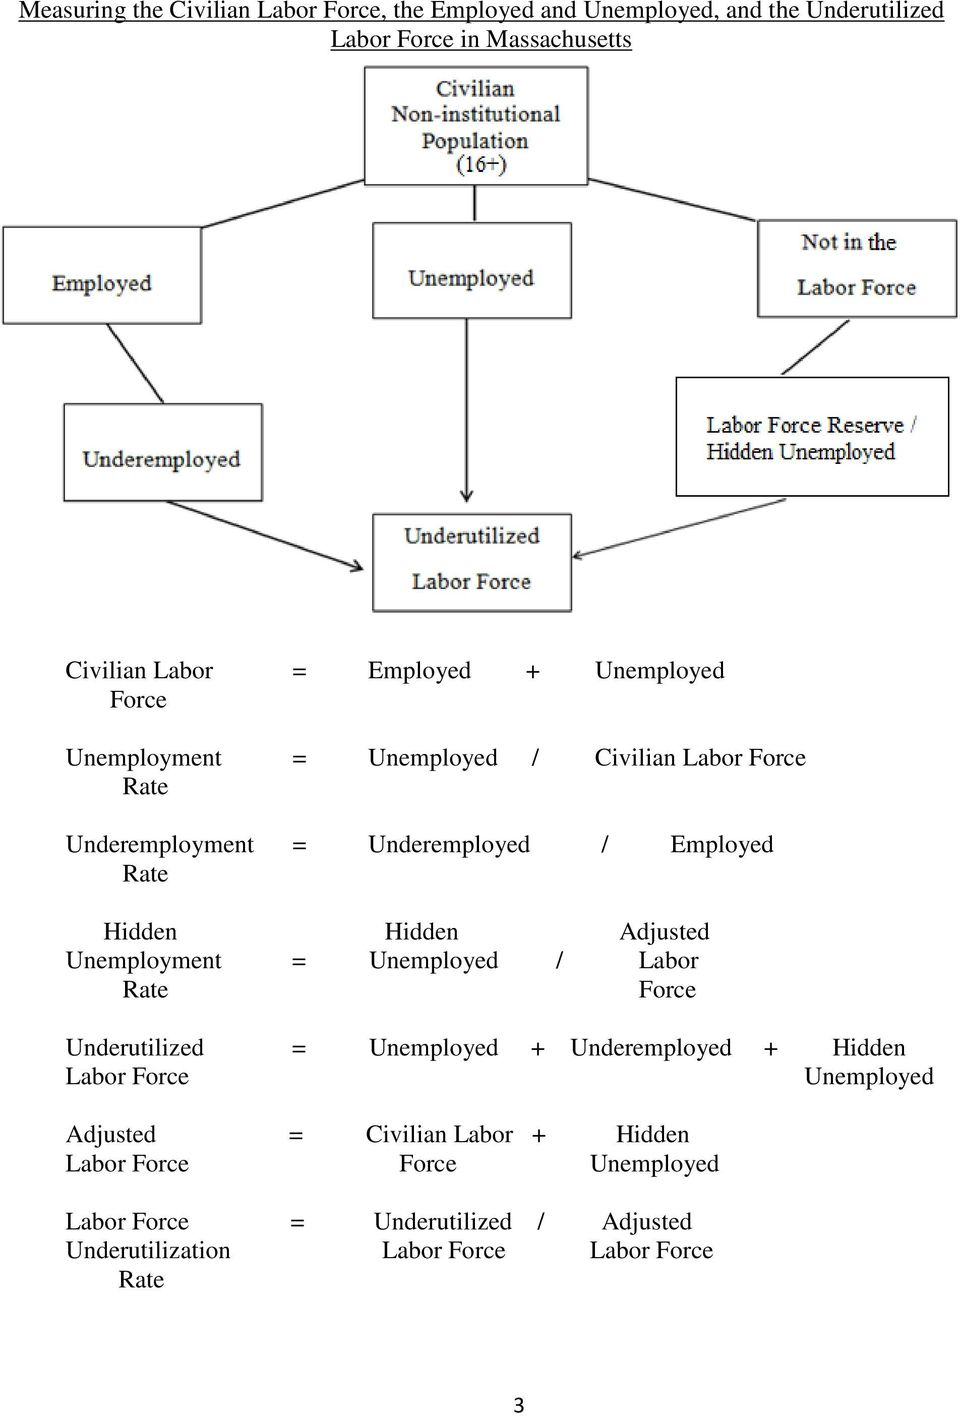 Hidden Adjusted Unemployment = Unemployed / Labor Rate Force Underutilized = Unemployed + Underemployed + Hidden Labor Force Unemployed